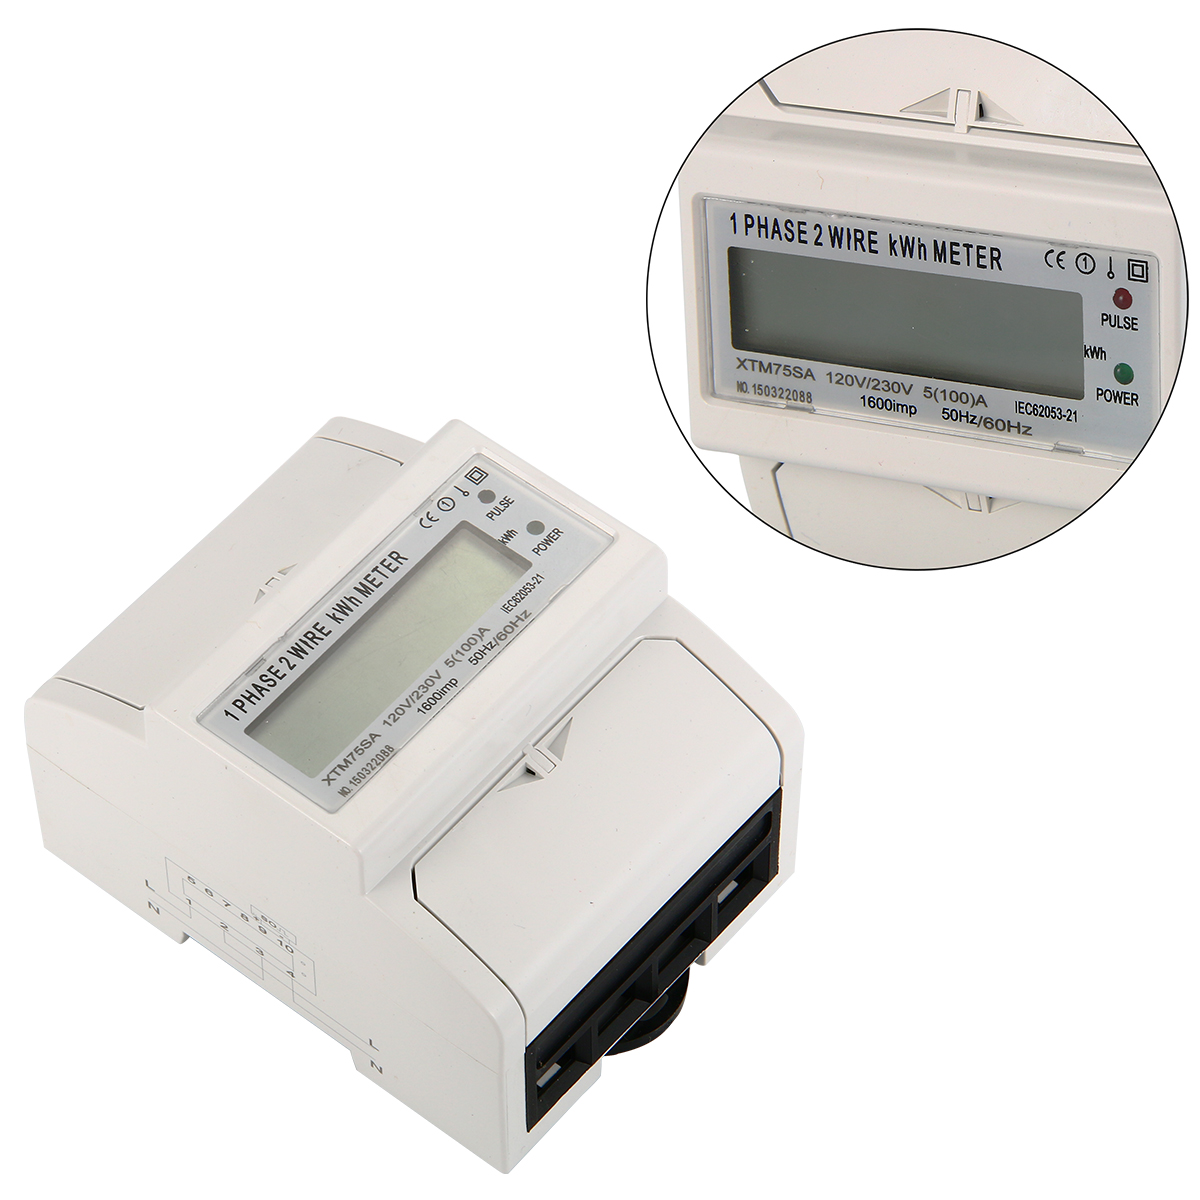 Din Rail Power Meter : A hz ac power meter so electricity kwh din rail